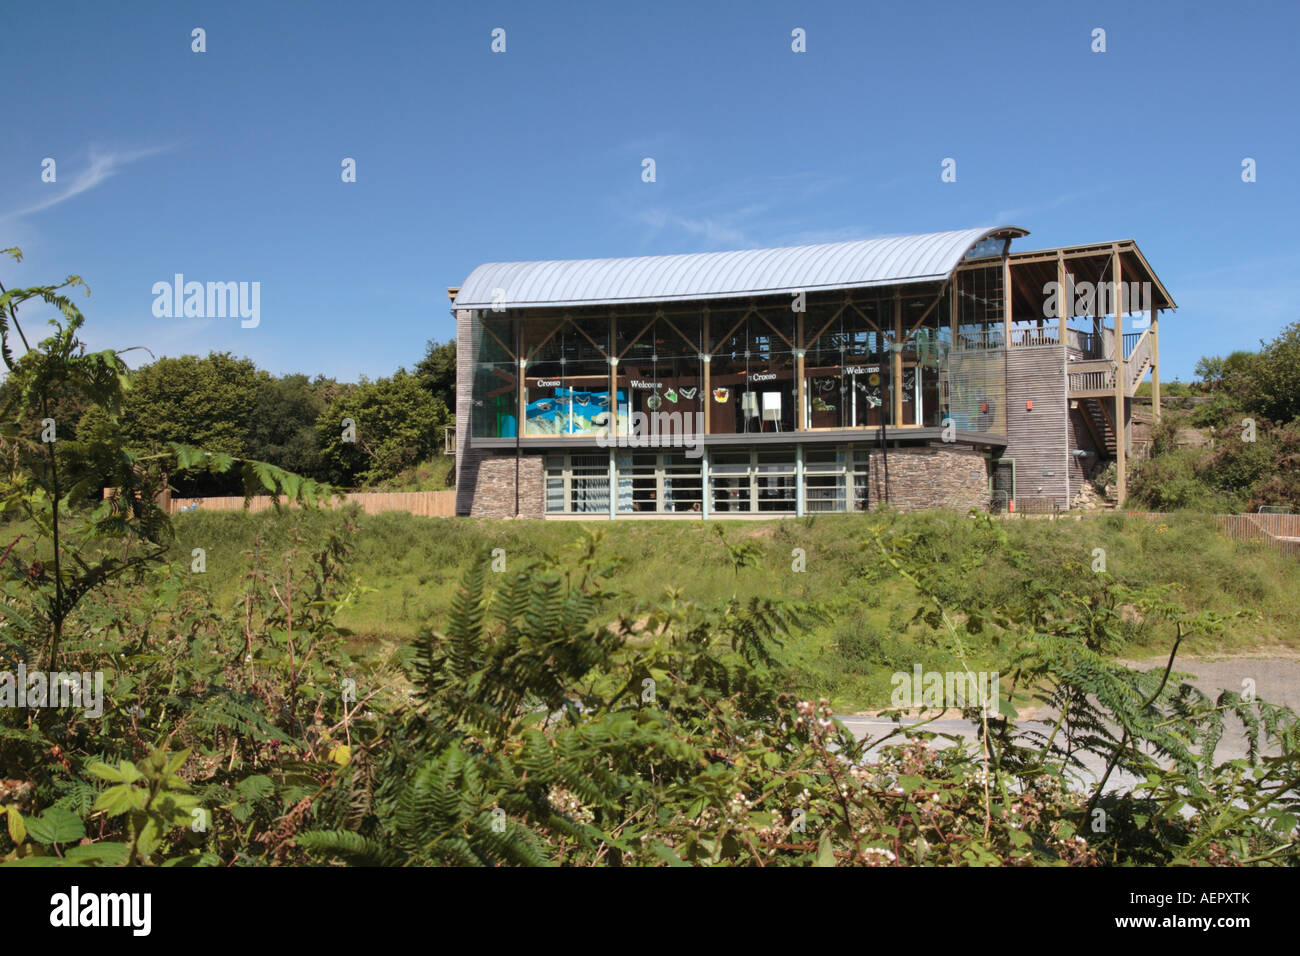 Visitor Centre Teifi Marshes Cilgerran Pembrokeshire West Wales  UK Stock Photo